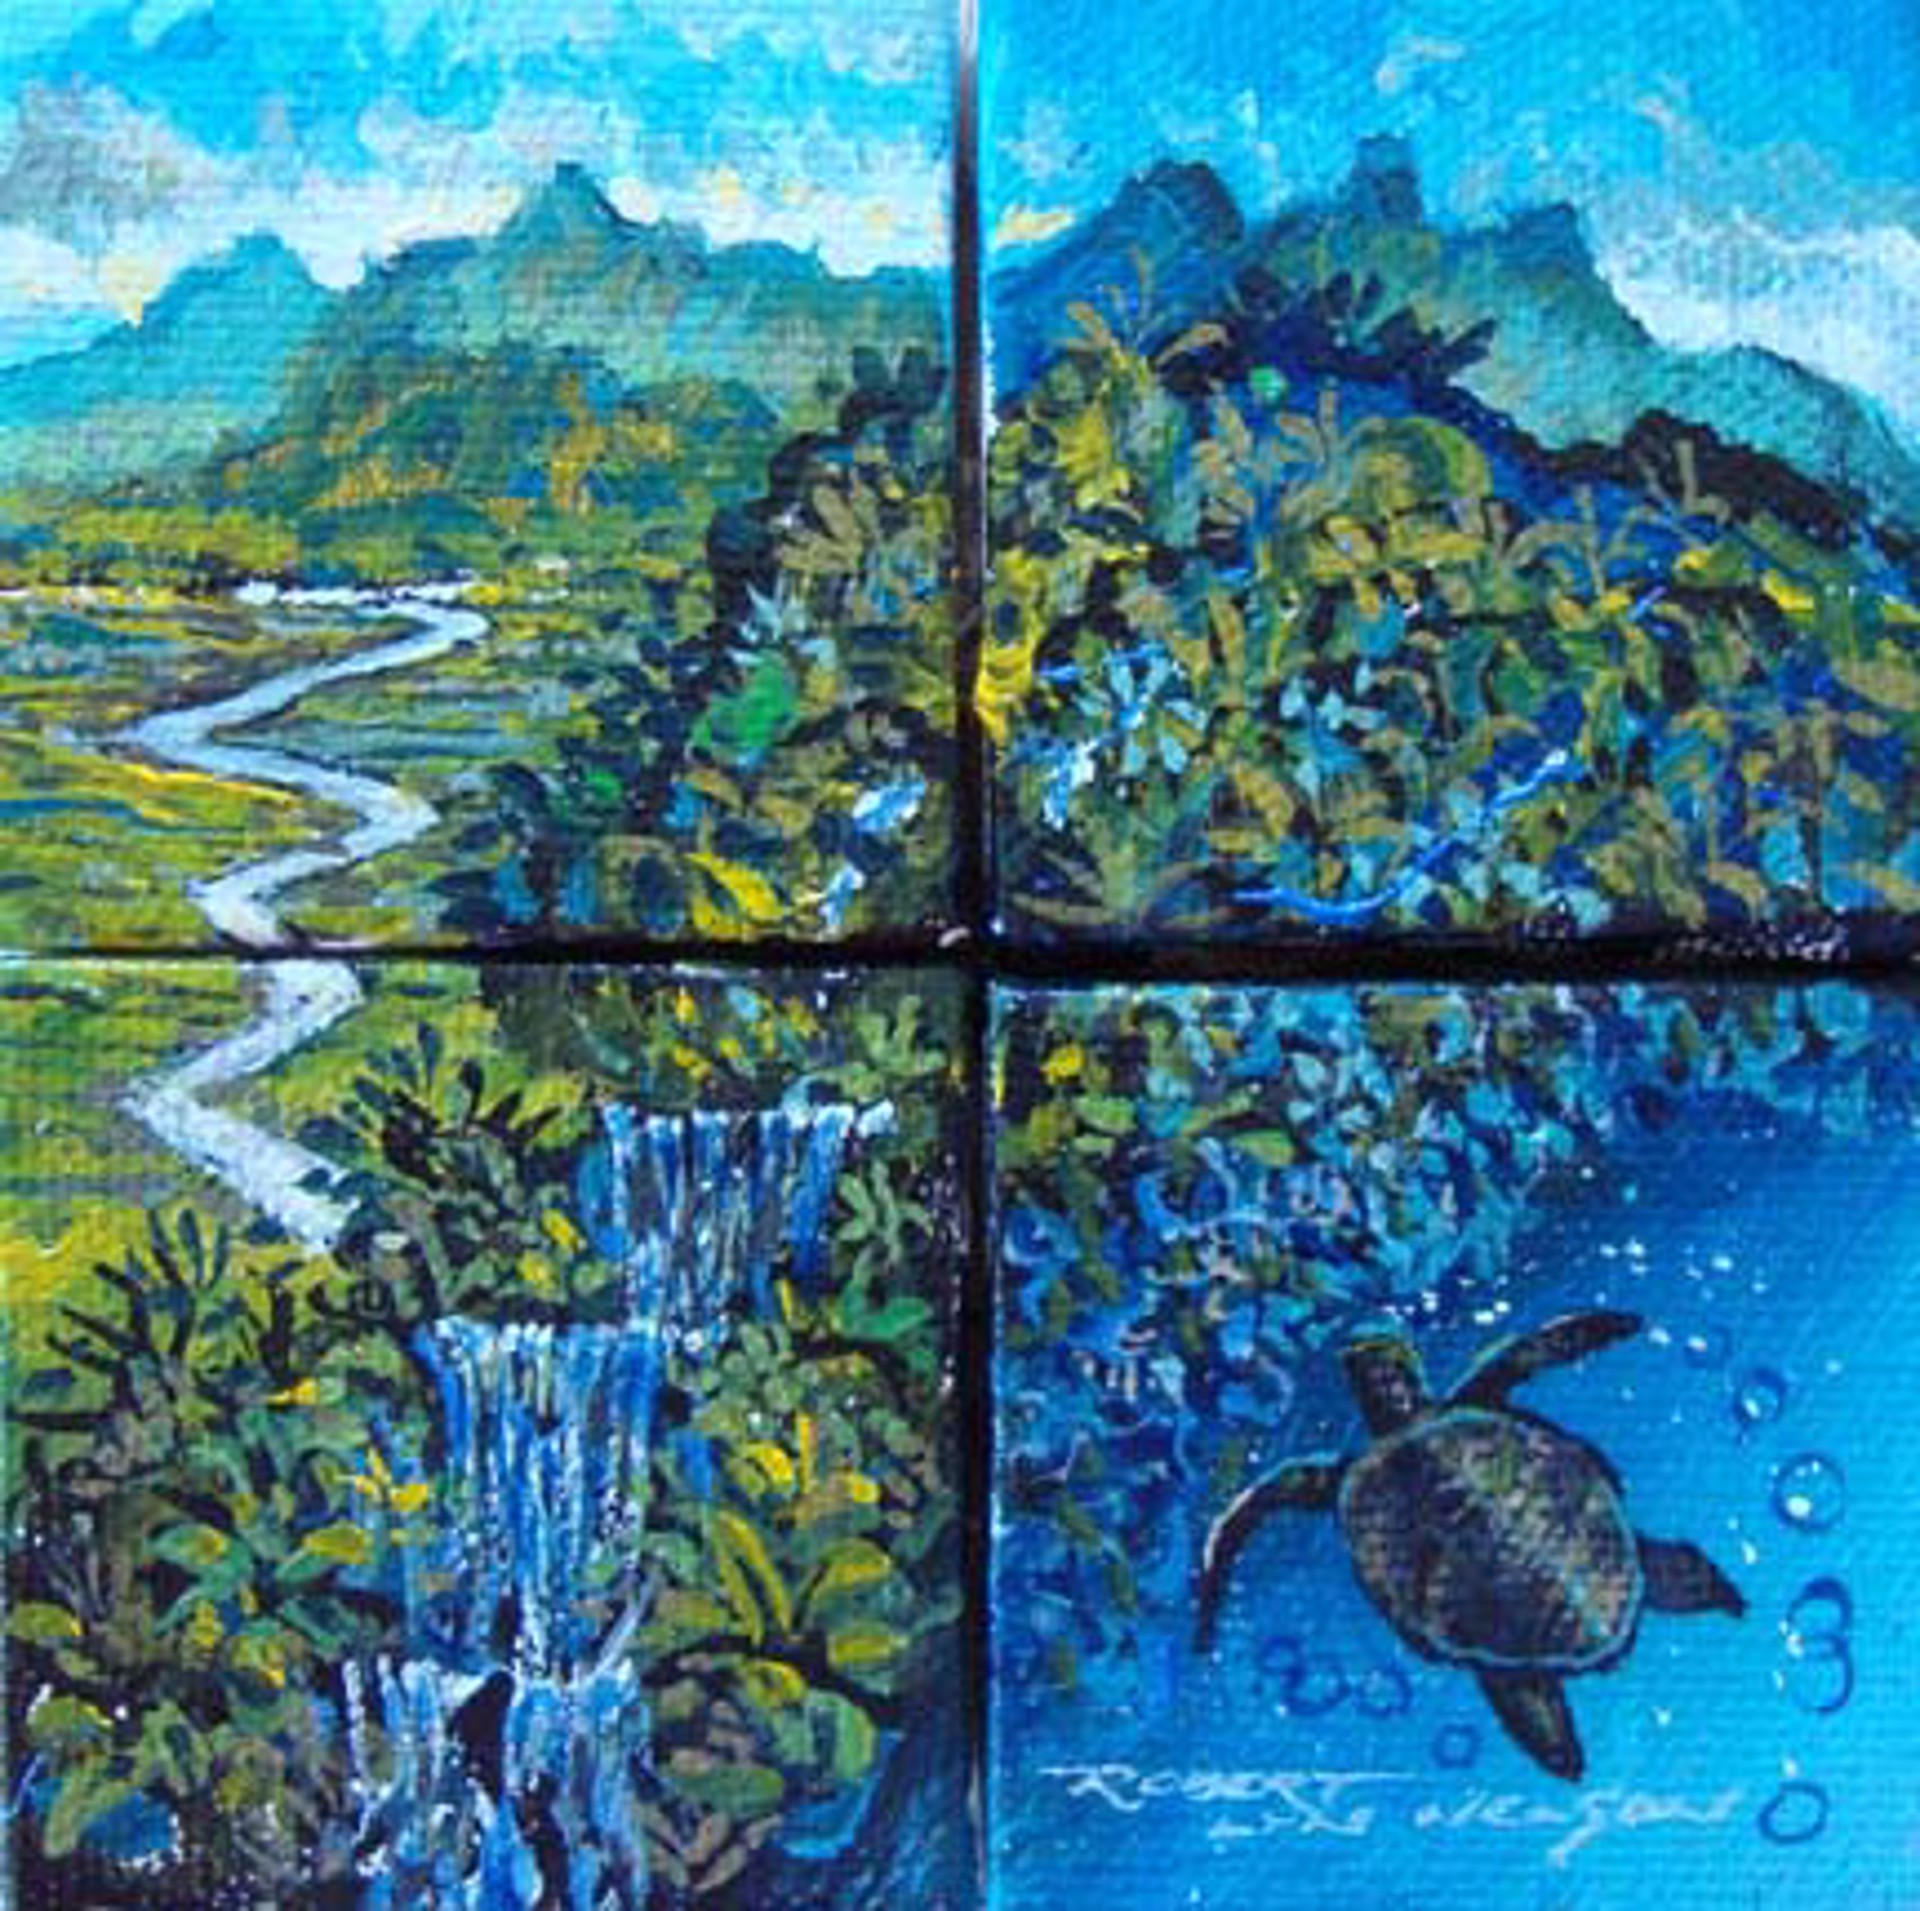 Land And Sea (Quadtych) by Robert Lyn Nelson